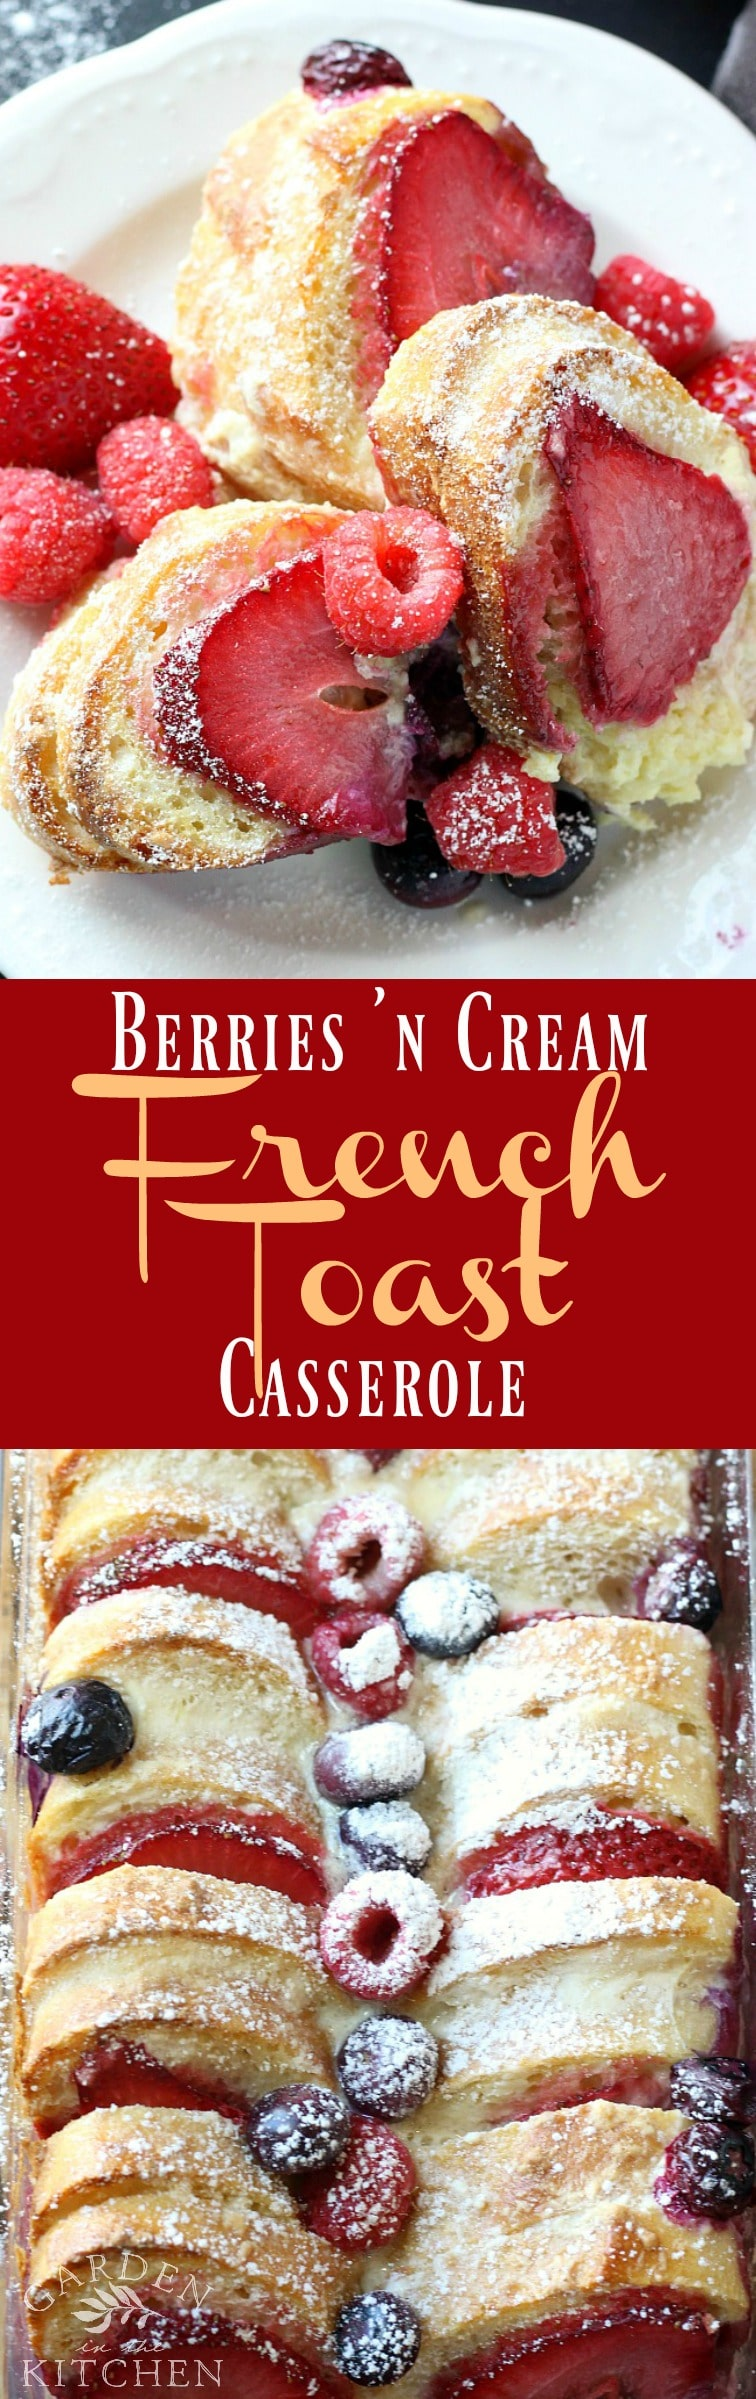 Berries 'n Cream French Toast Casserole